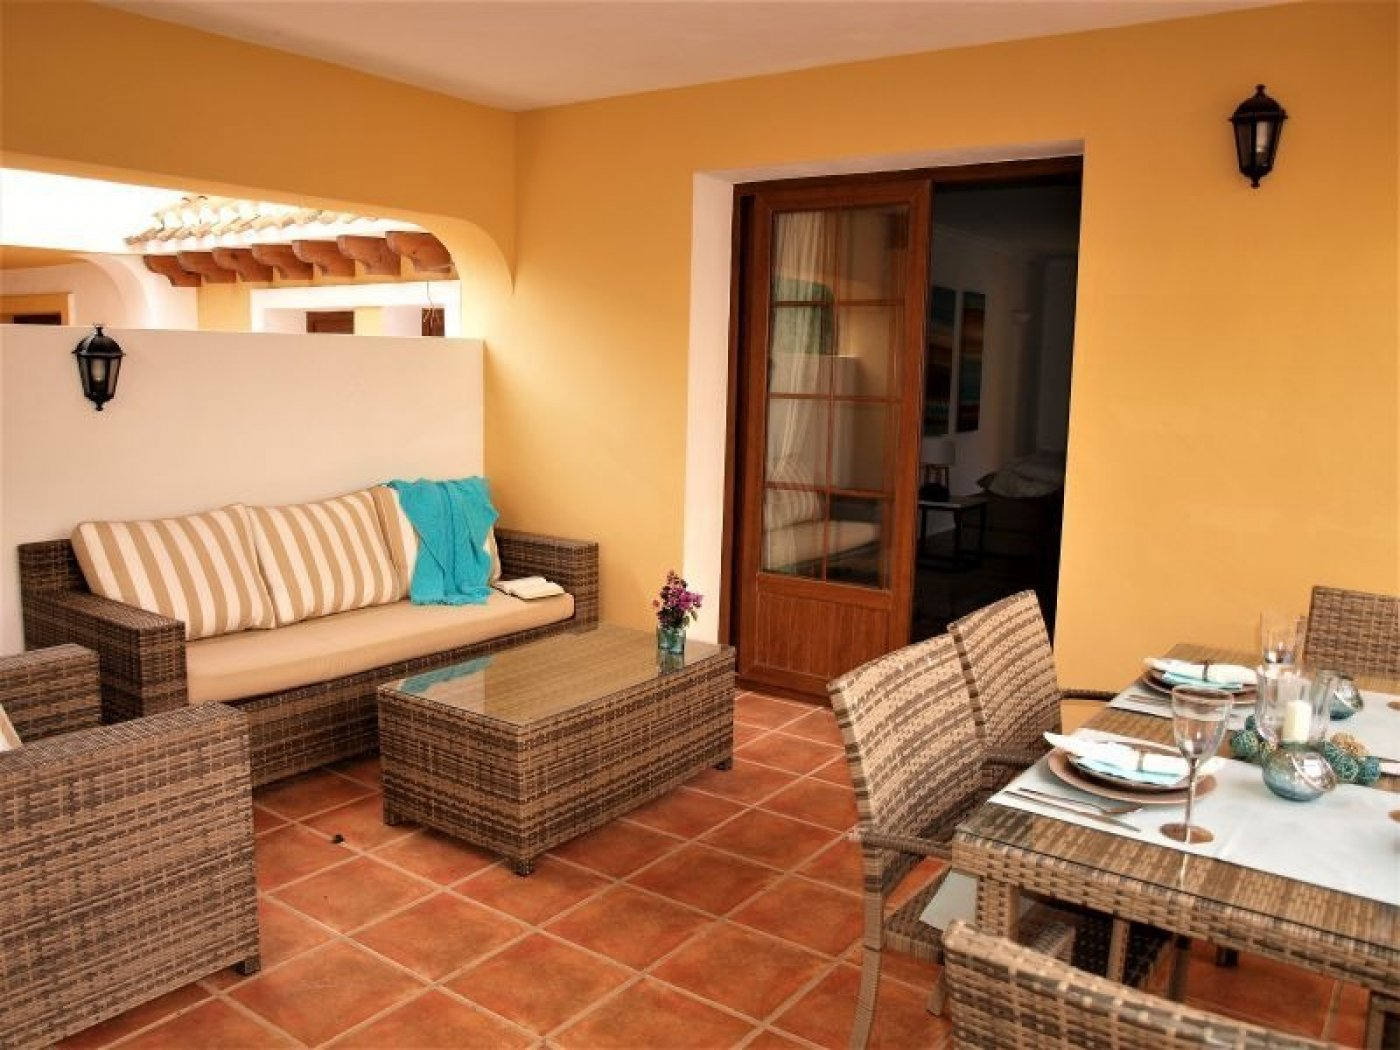 Gallery Image 33 of INVESTMENT OPPORTUNITY at La Manga Club! 2 bedroom town house